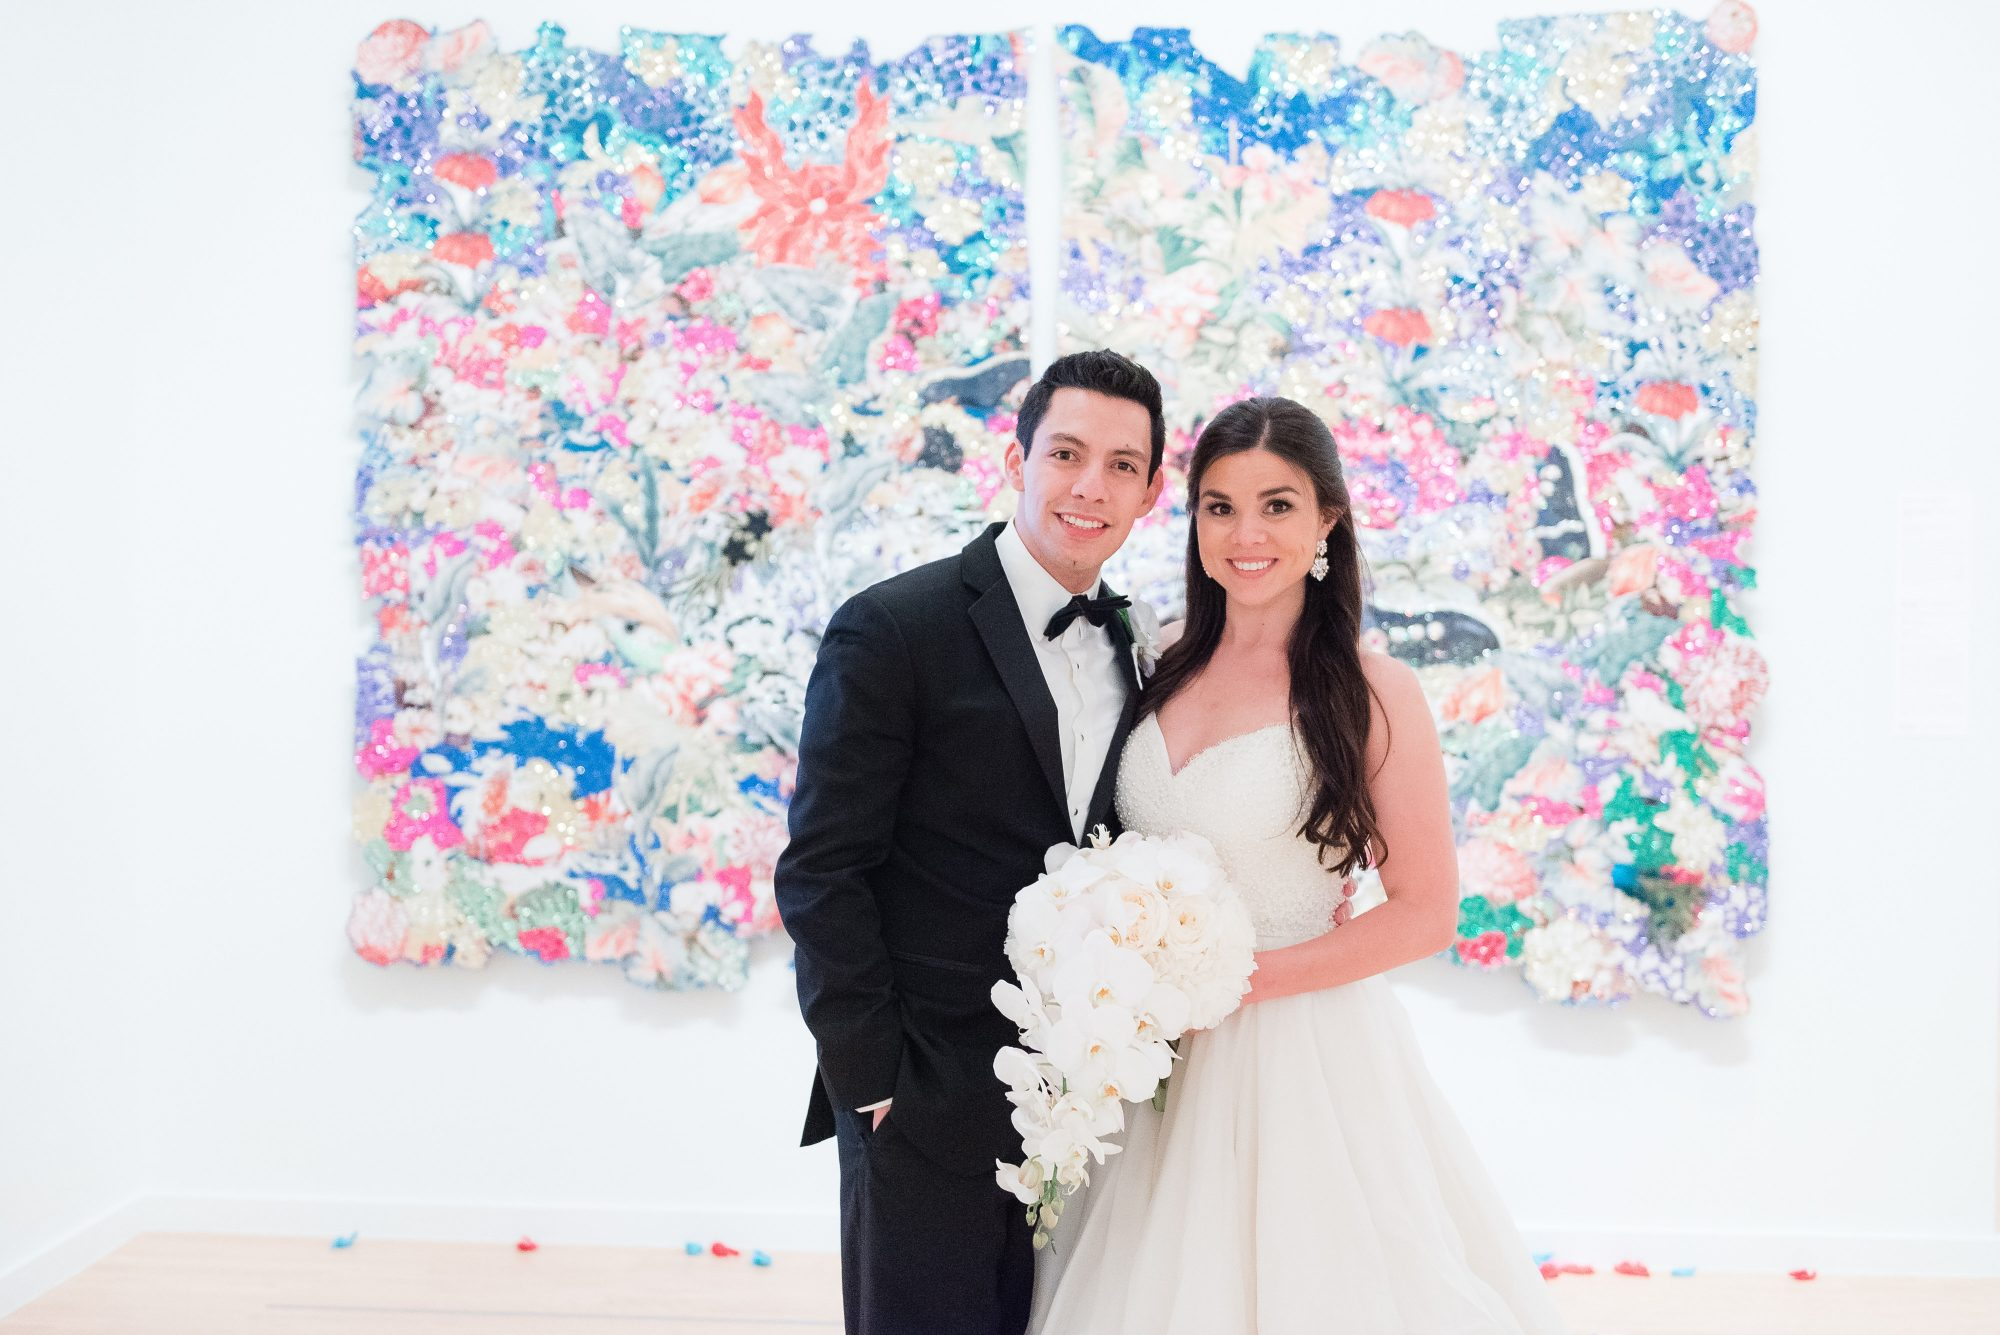 The Bride and Groom Art Museum Wedding